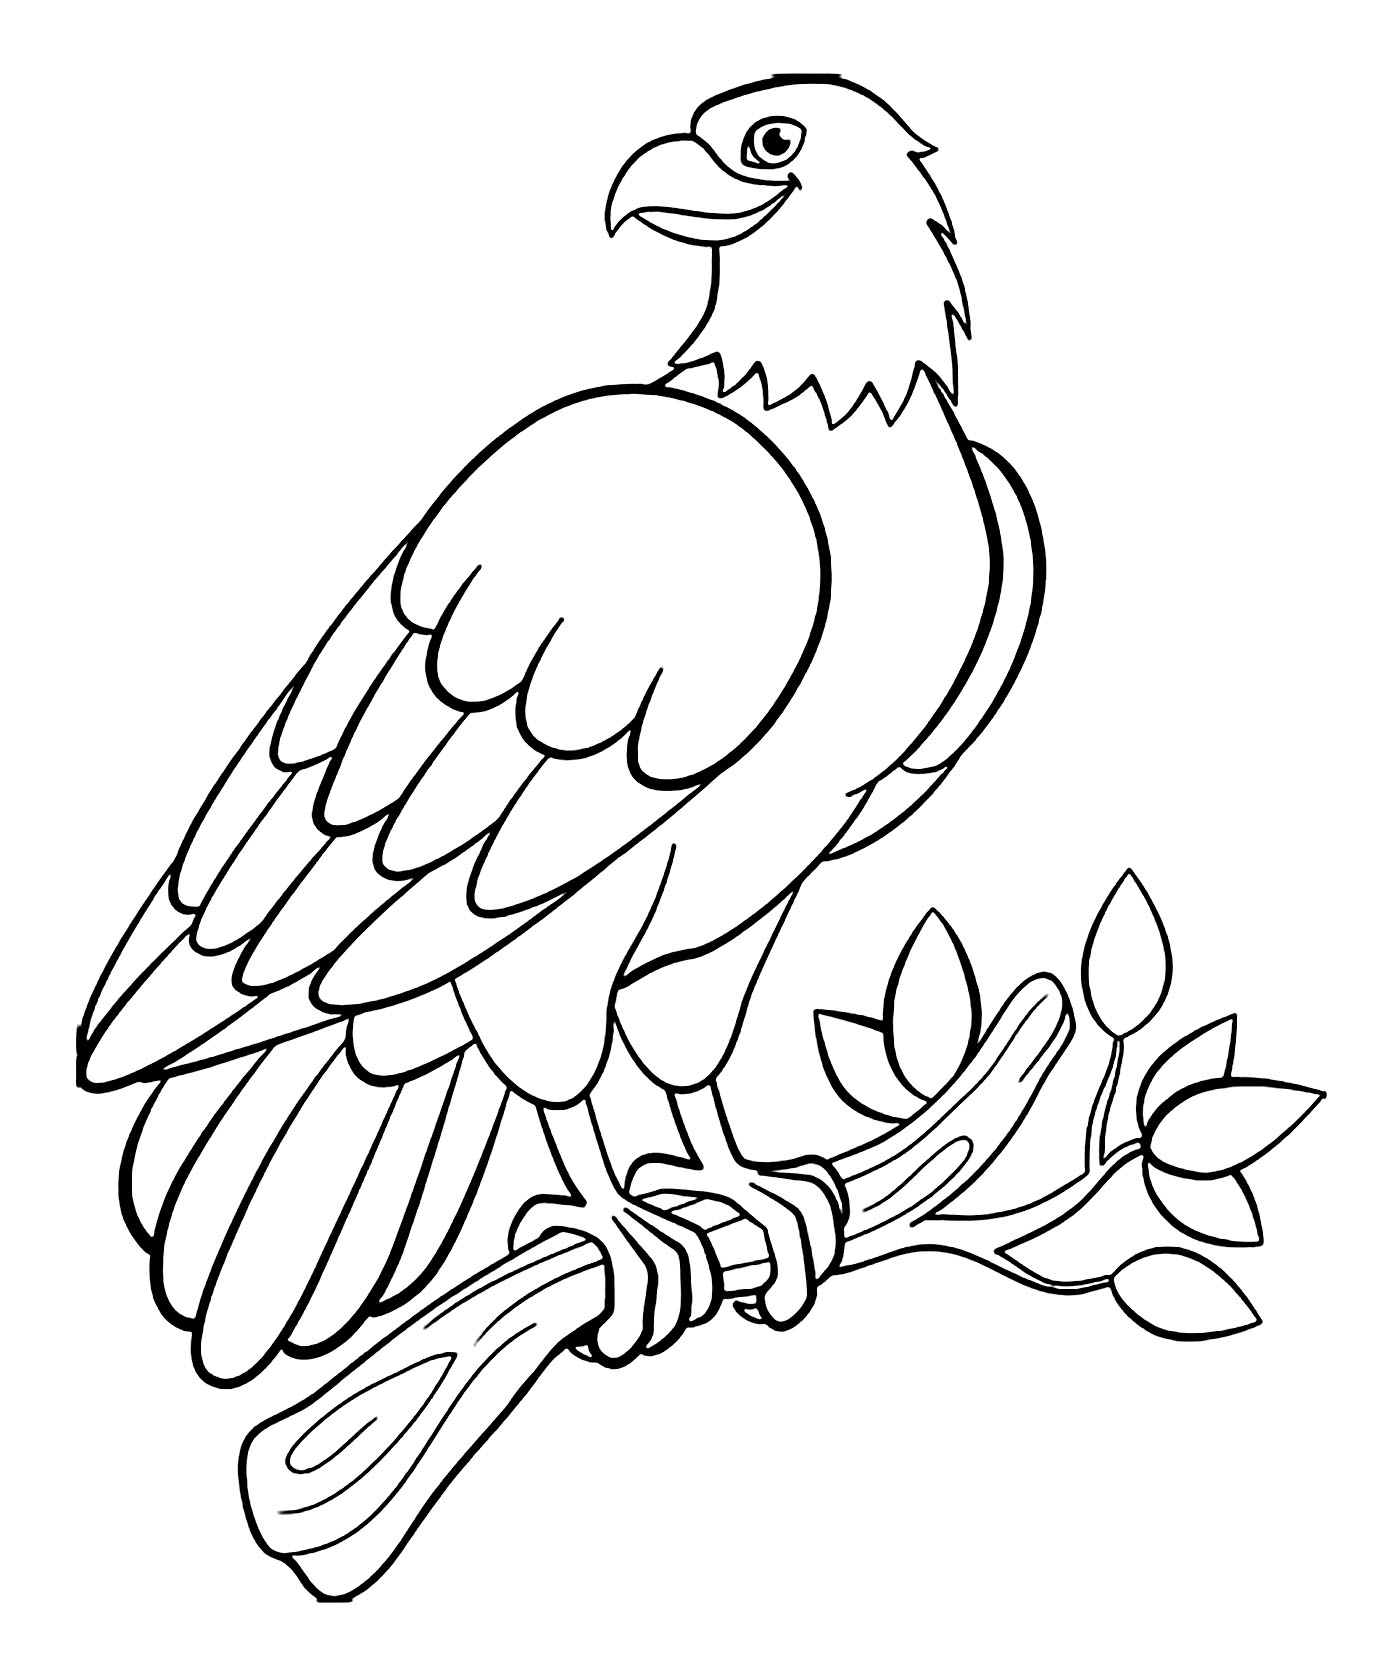 bird coloring pages to print bird coloring pages bird pages print coloring to